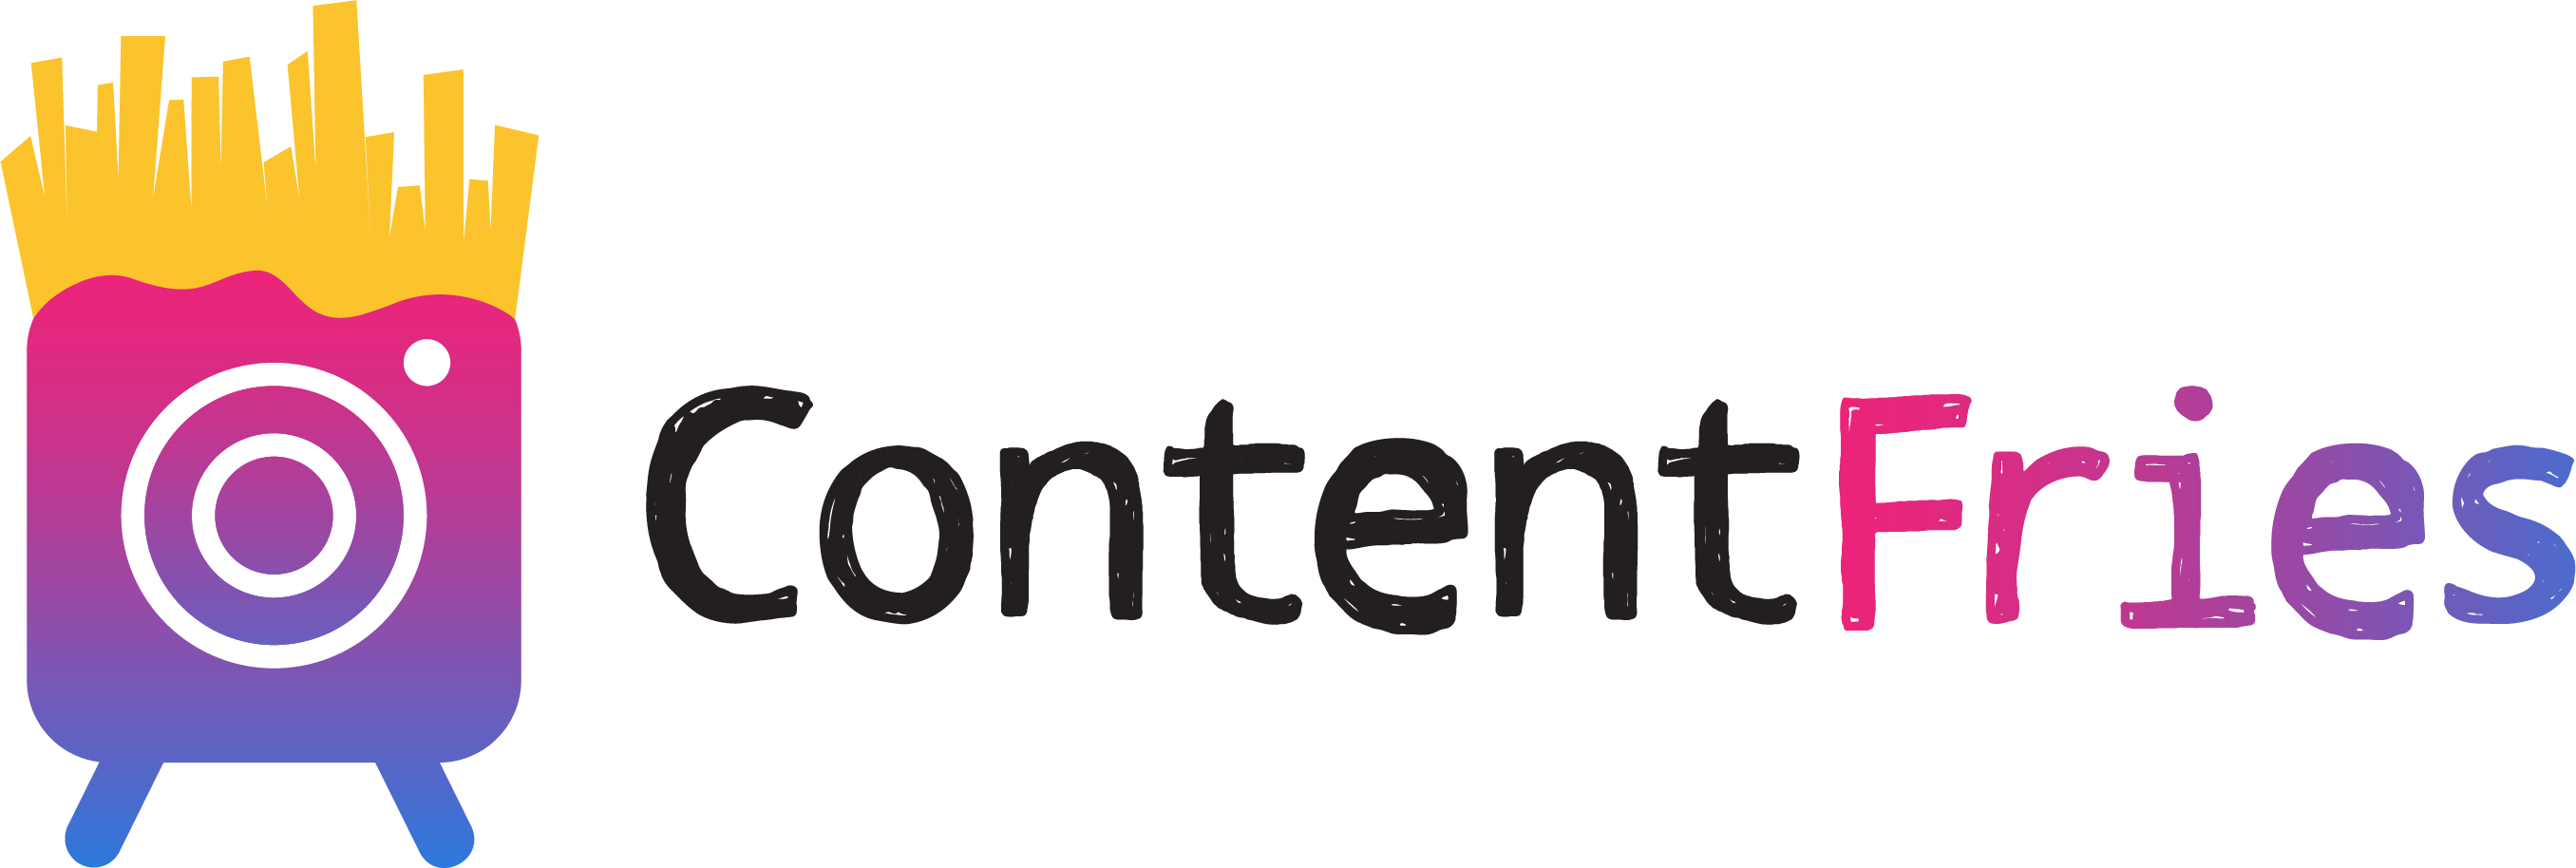 contentfries